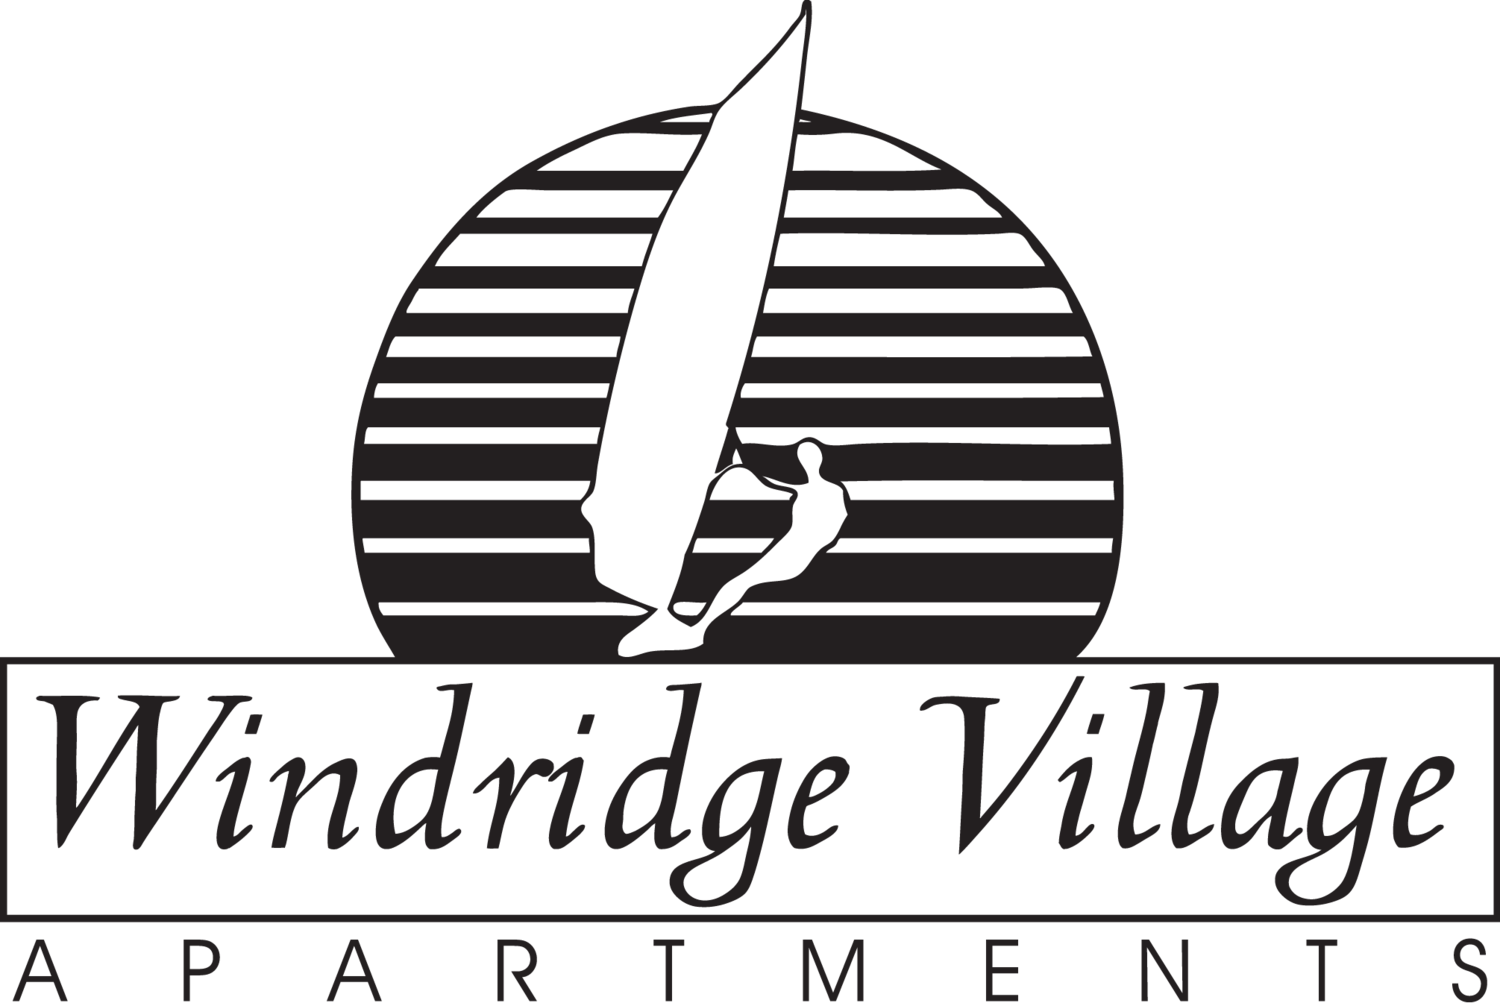 Windridge Village